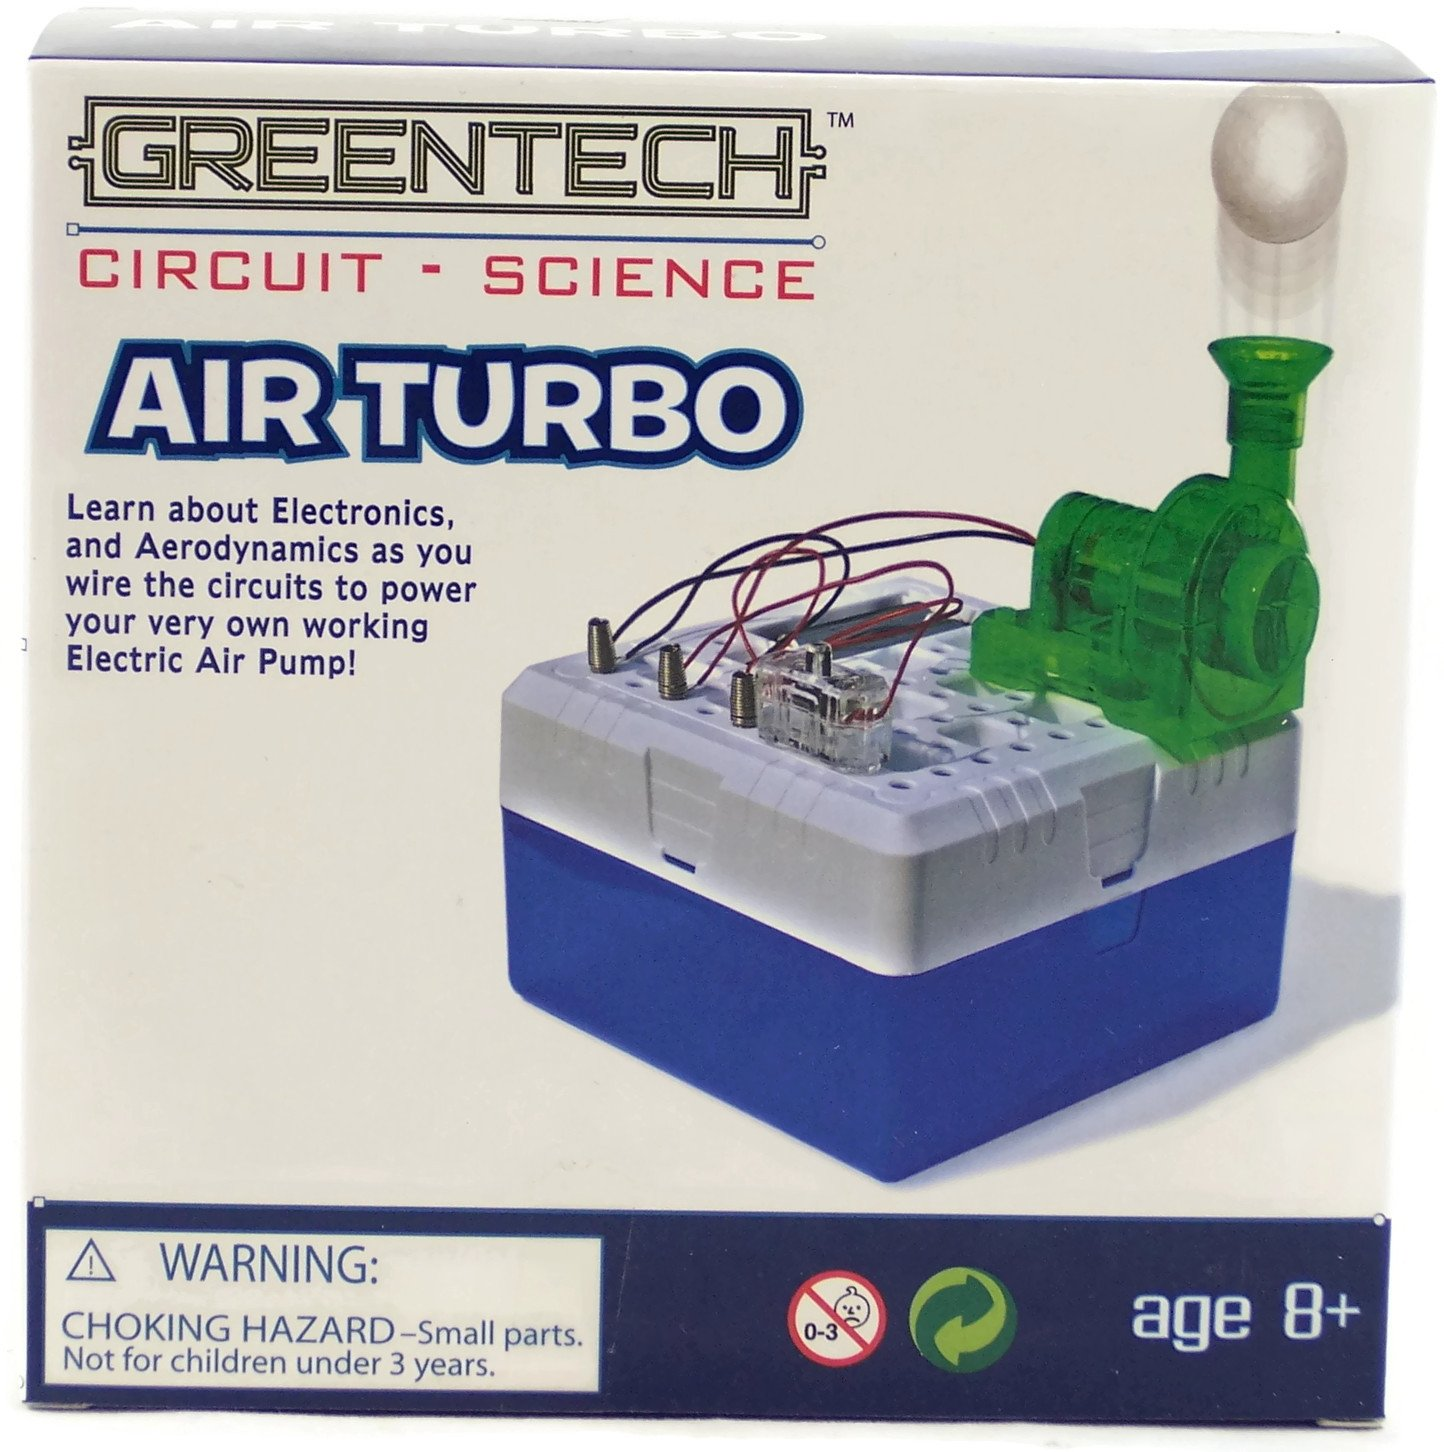 Greentech Circuit Science Airturbo Model Kit By Five Basic Electronics Toys For Kids Snap Circuits Jr Sc 100 Below Games